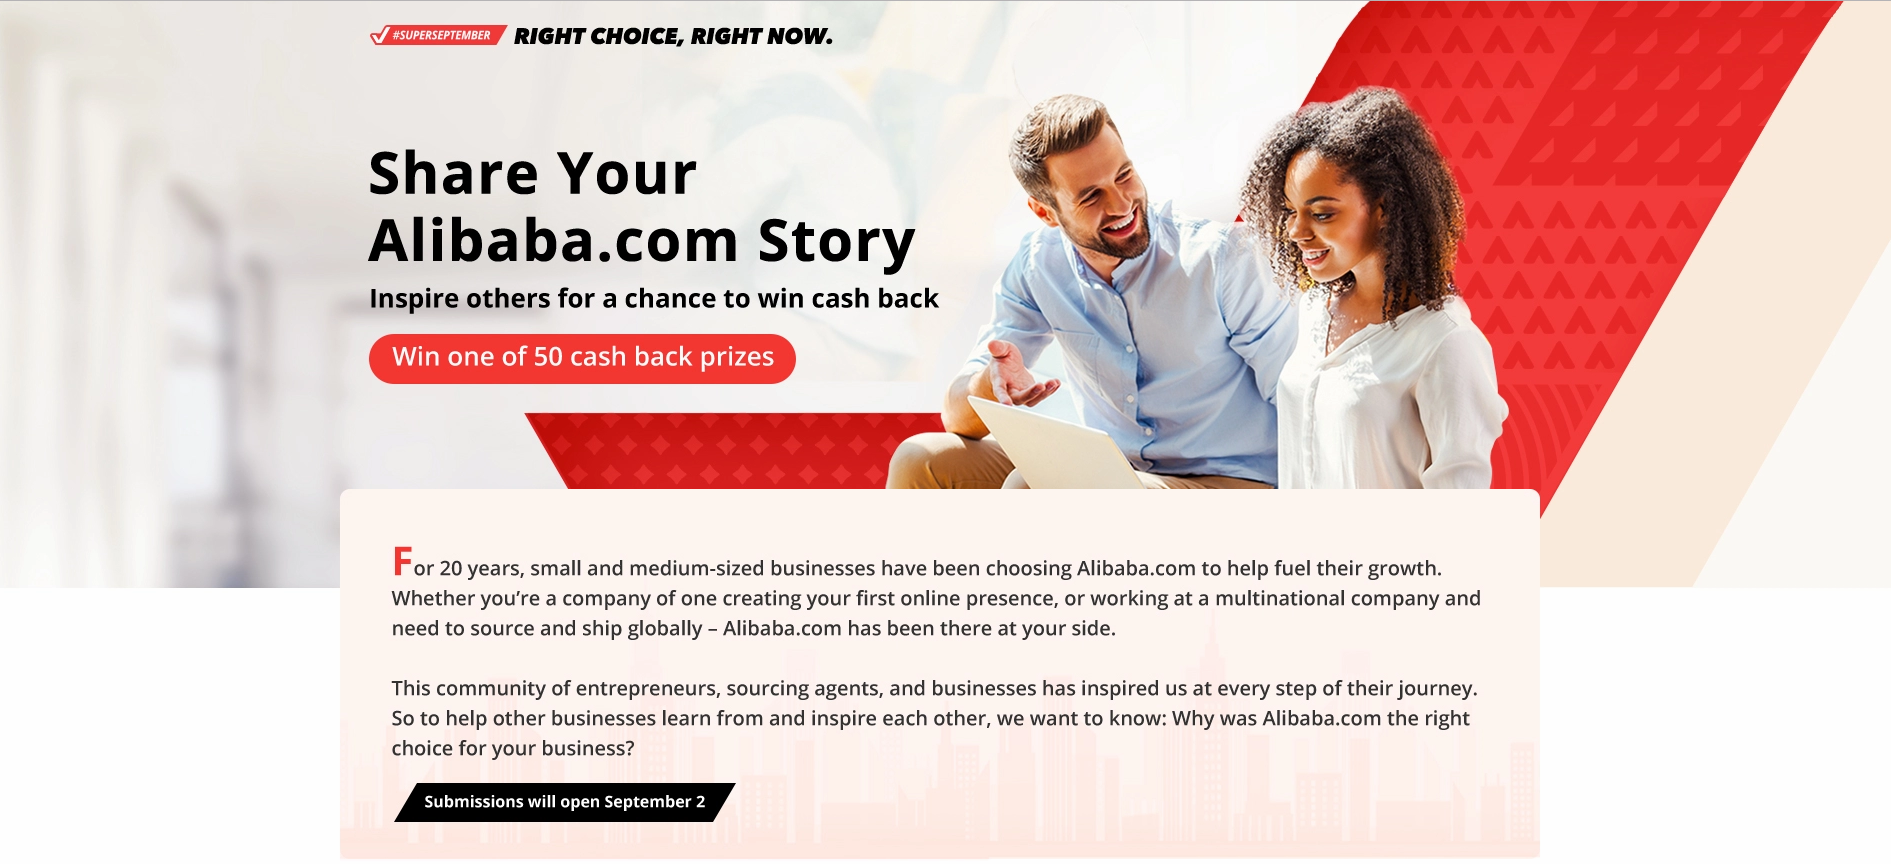 Share Your alibaba Story Inspire others for a chance to win cash back